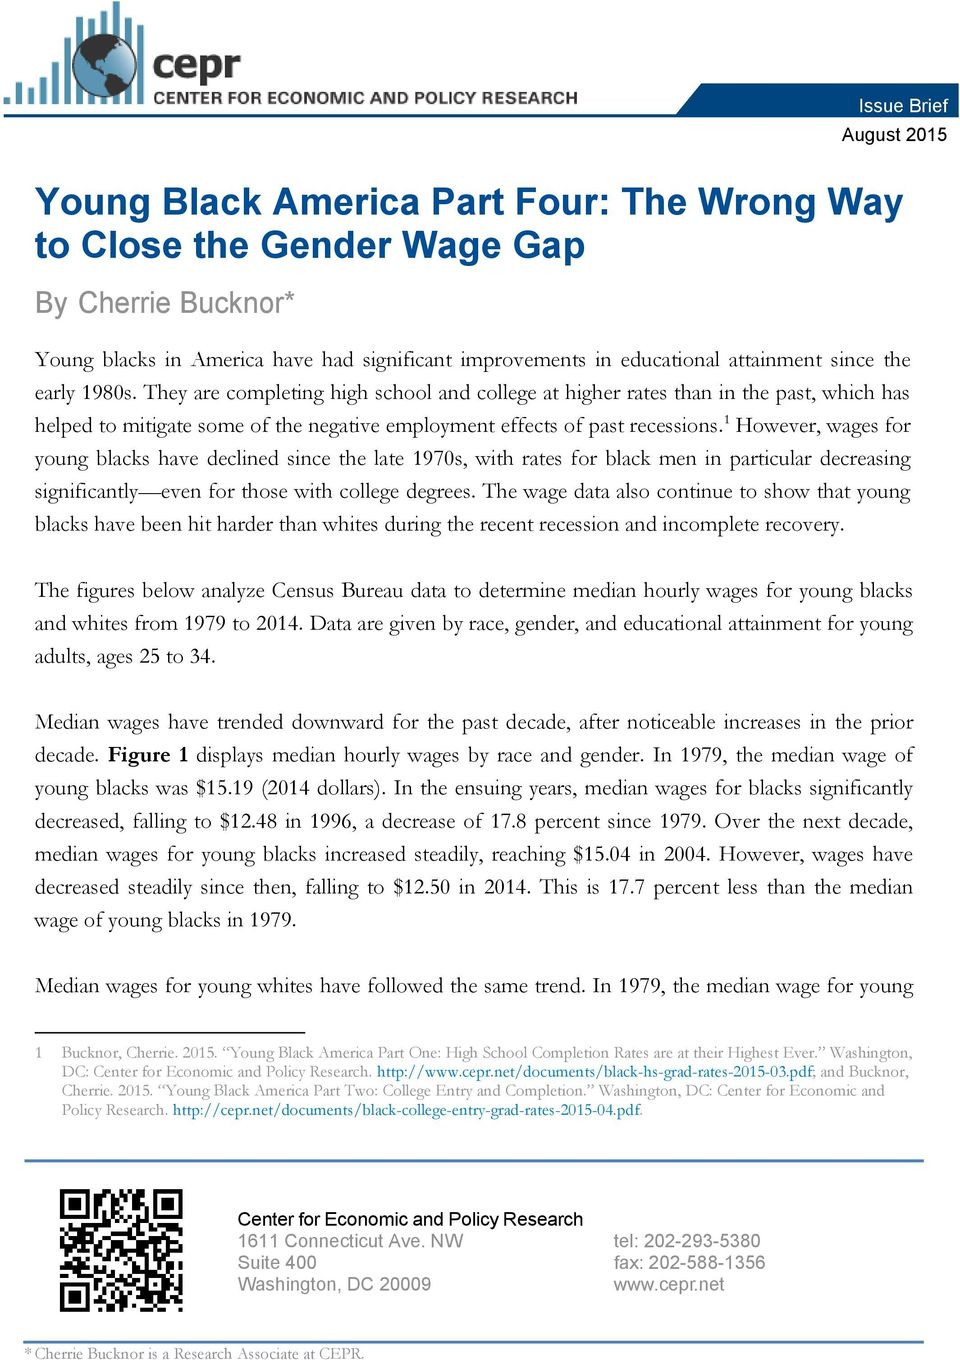 1 However, wages for young blacks have declined since the late 1970s, with rates for black men in particular decreasing significantly even for those with college degrees.